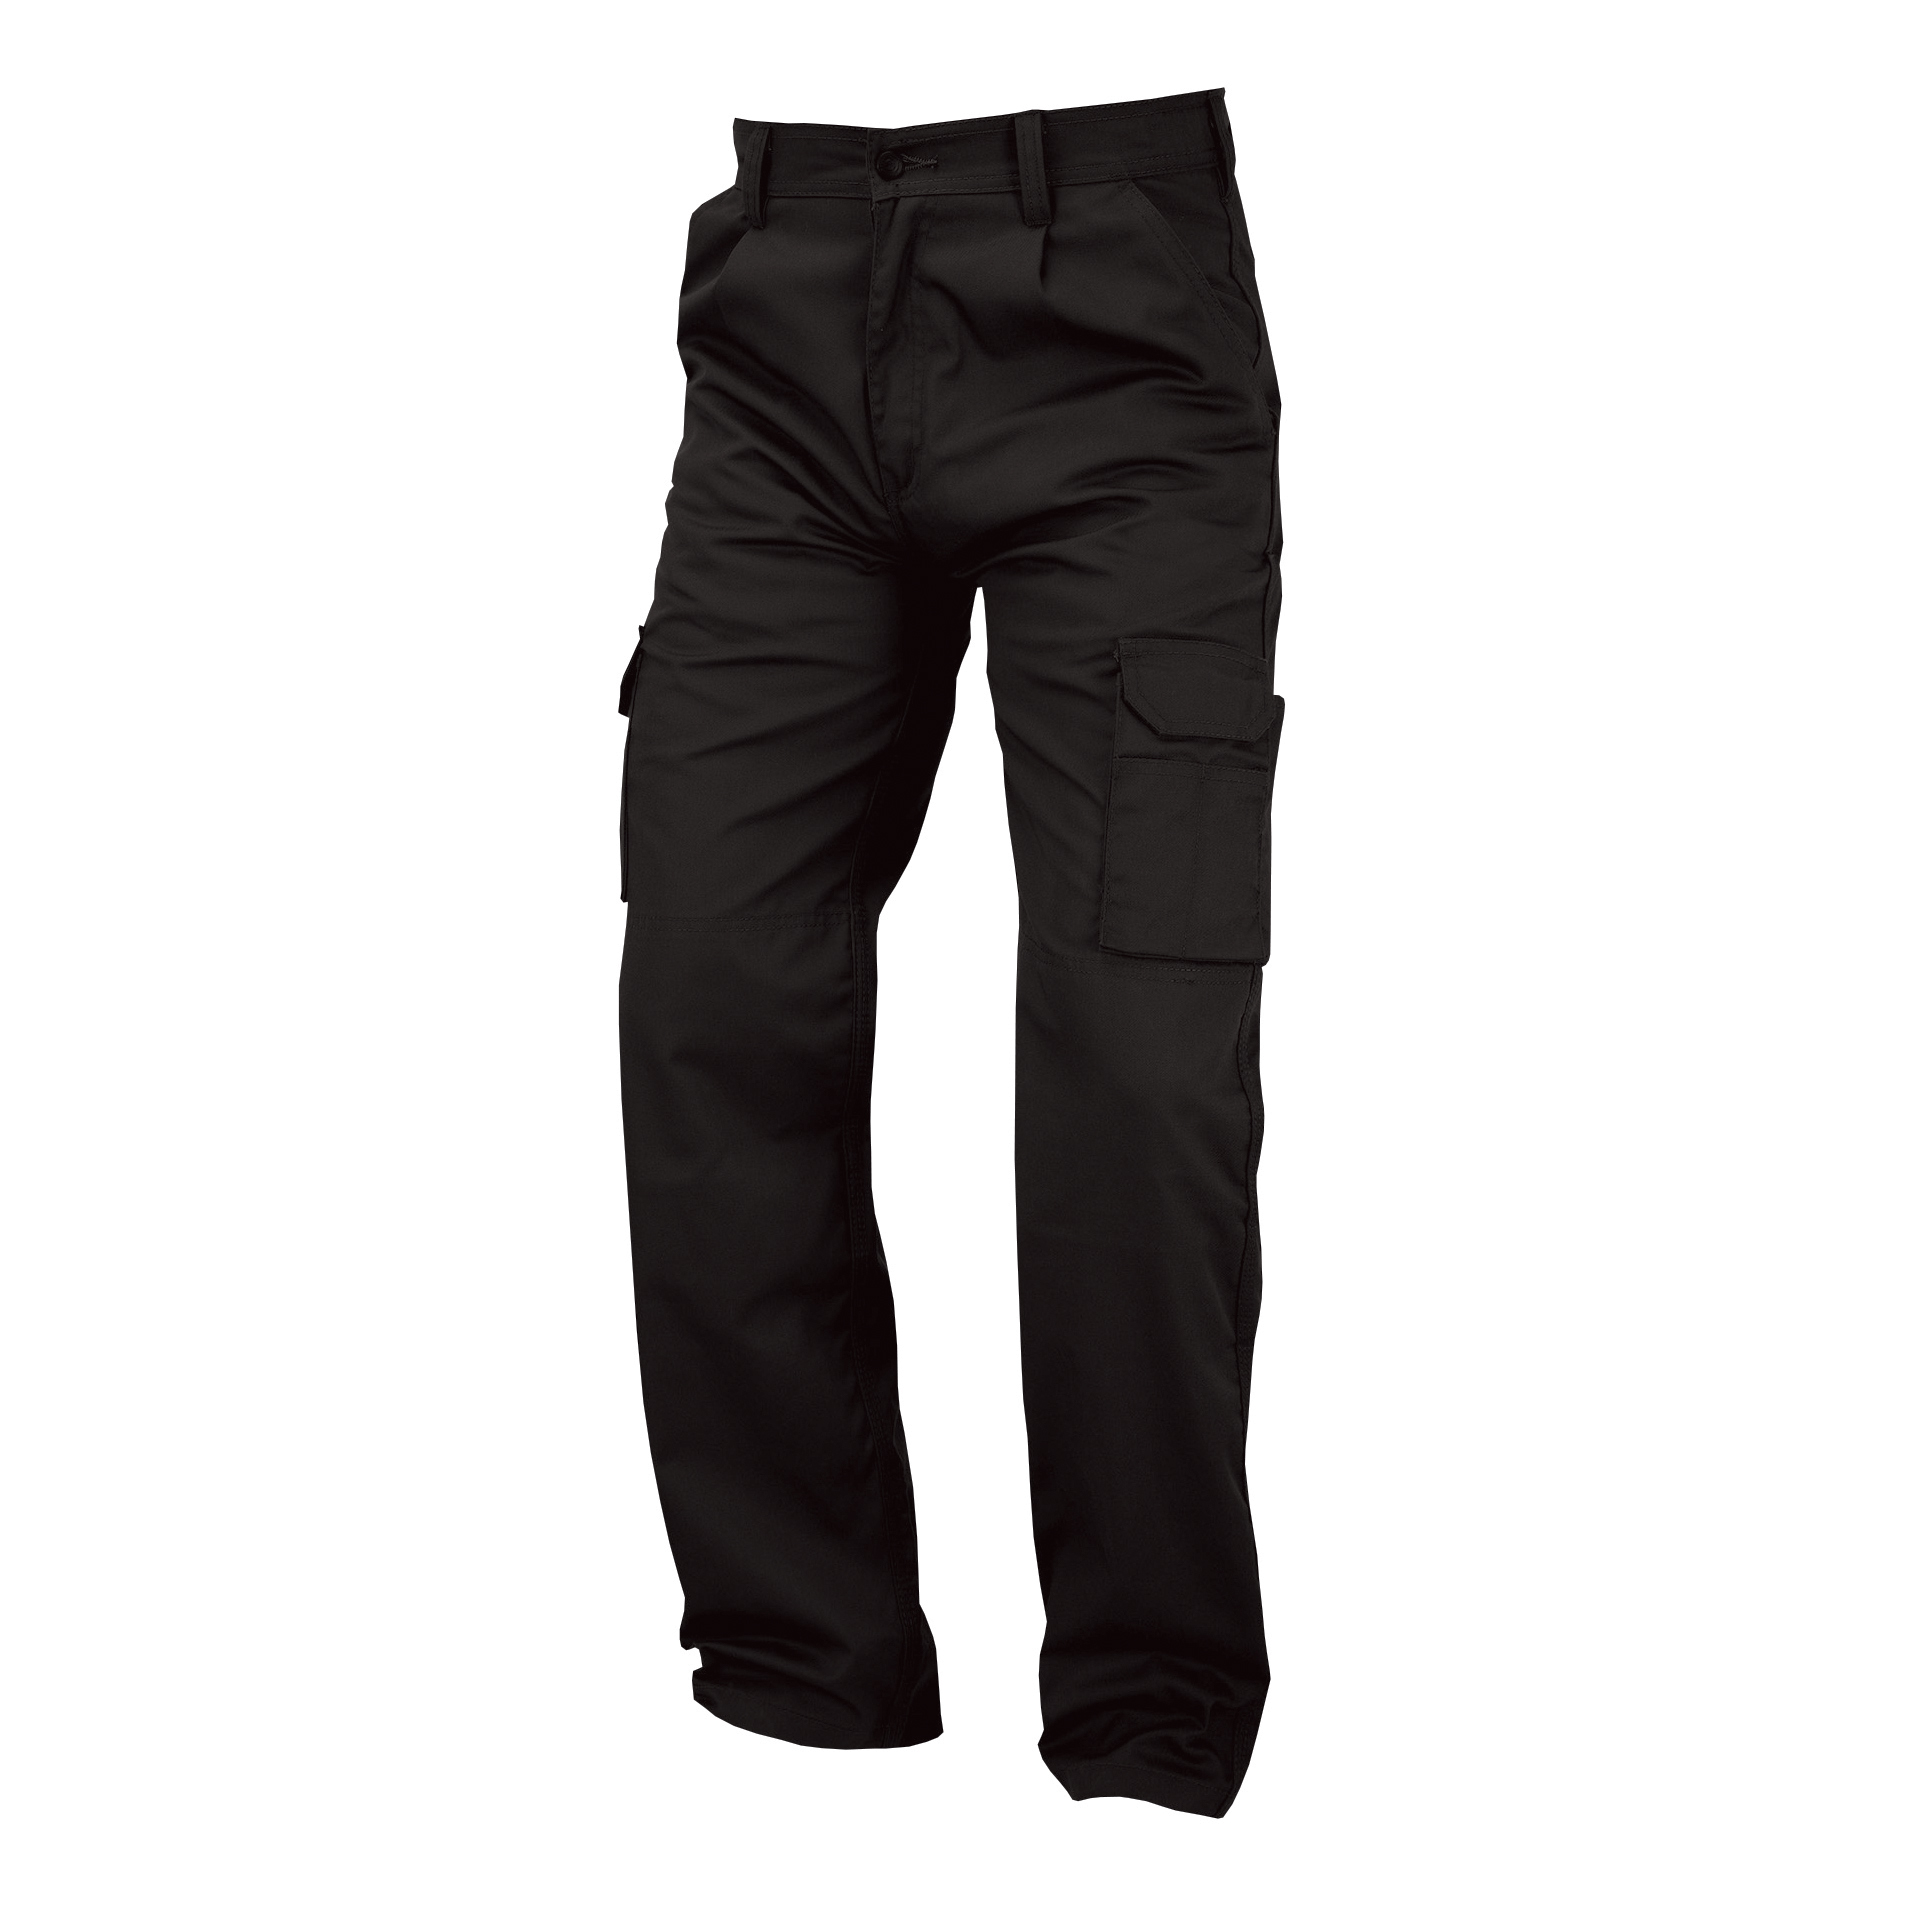 Combat Trousers Polycotton with Pockets 38in Tall Black Ref PCTHWBL38T 1-3 Days Lead Time